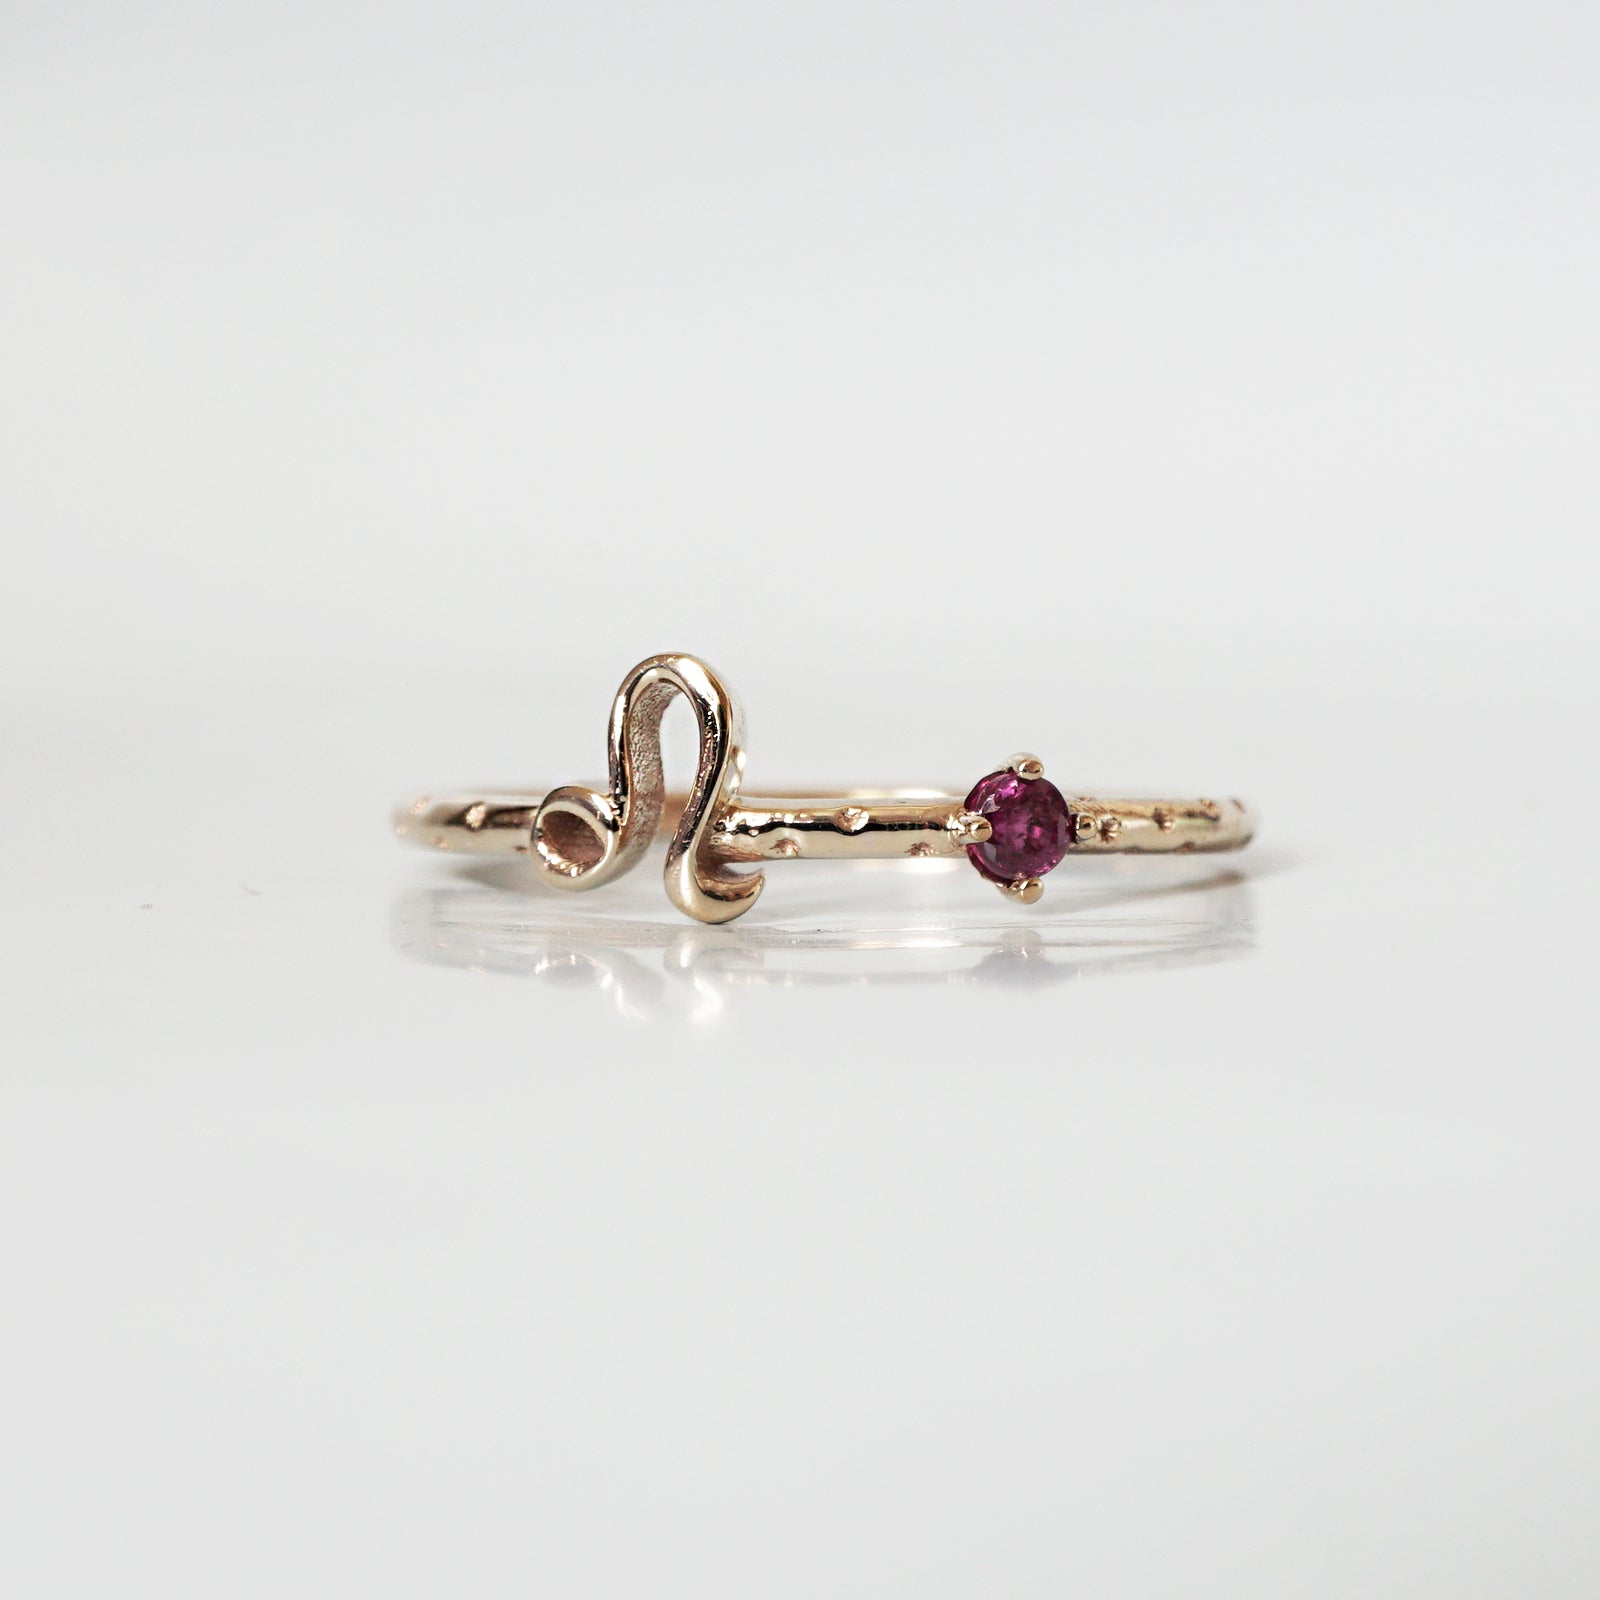 14K Leo Horoscope Birthstone Ring (Ruby + Peridot)